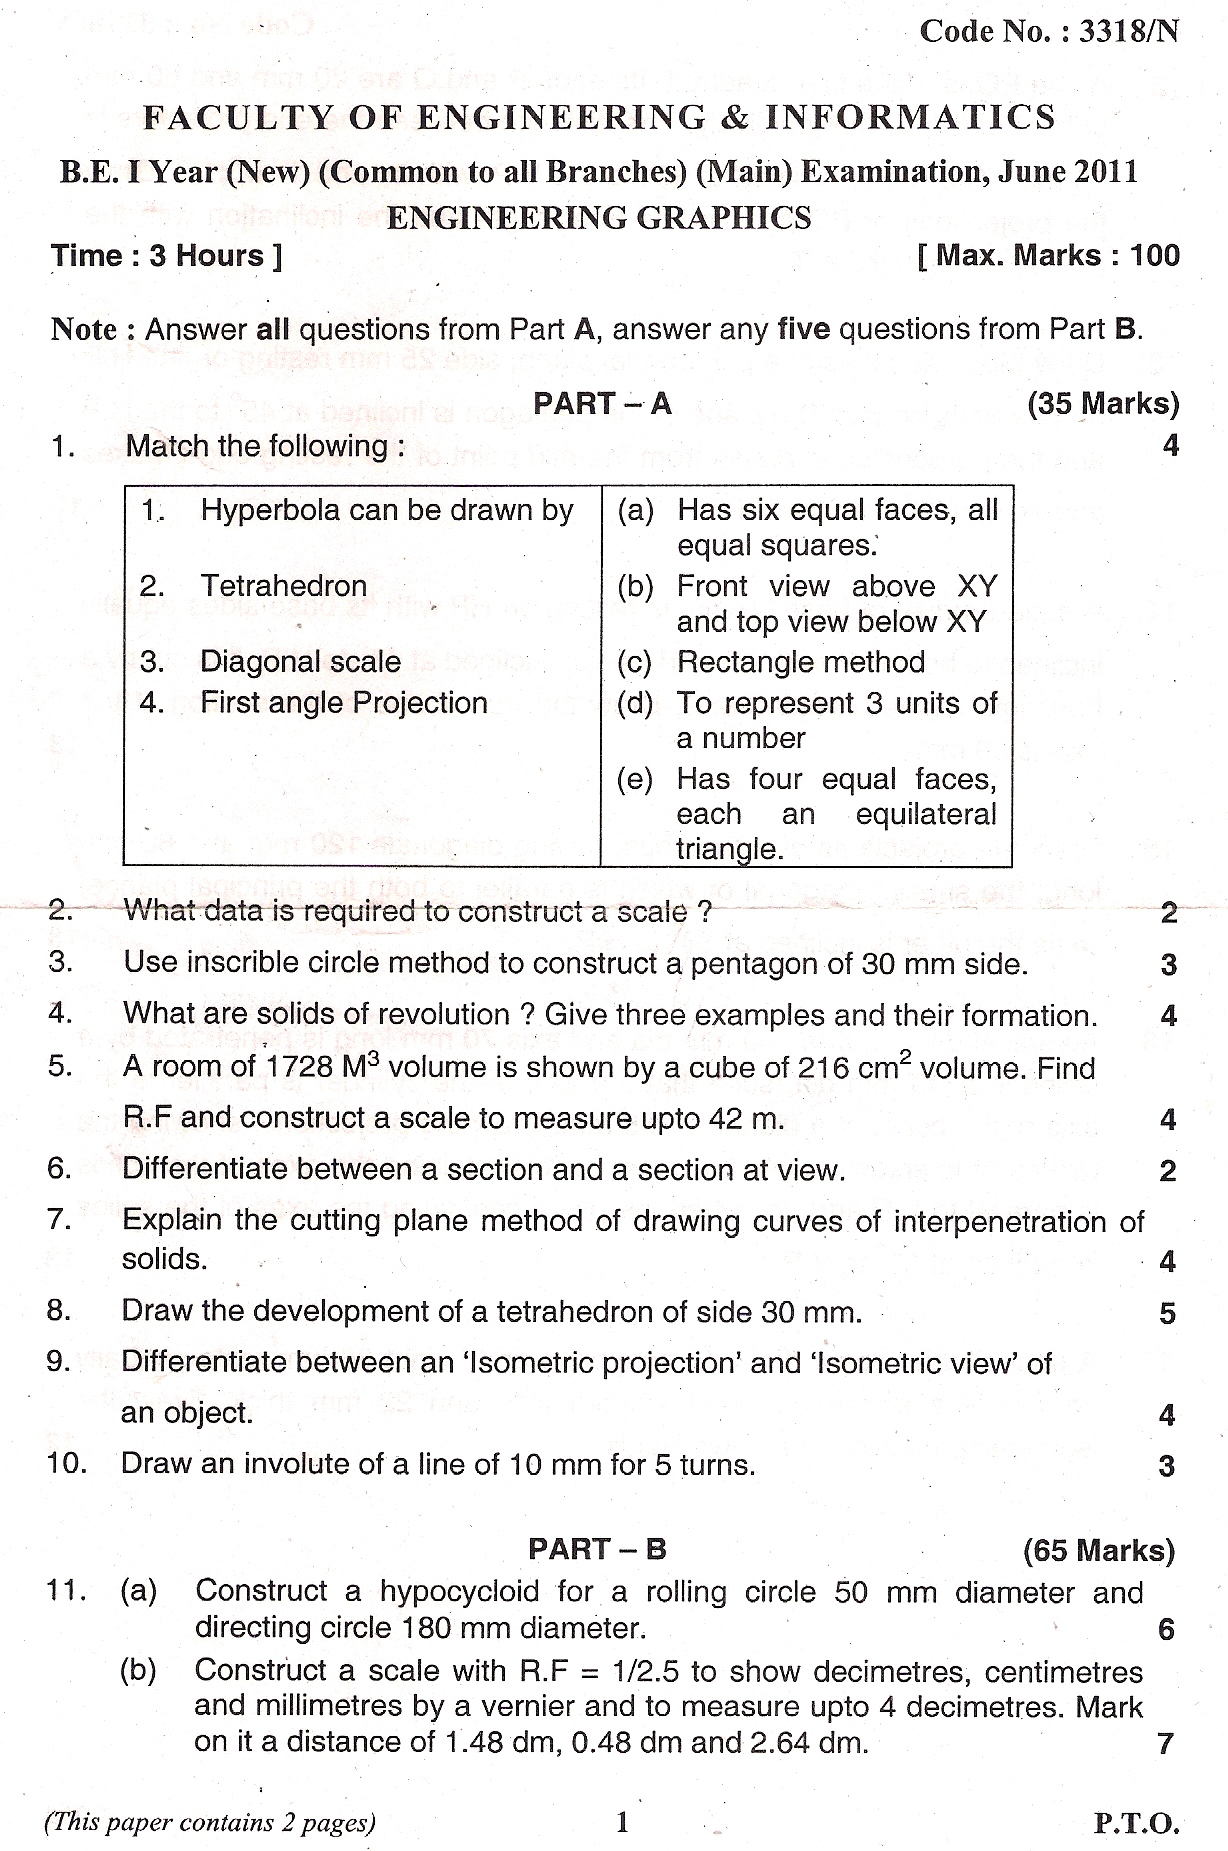 Previous Year Question Papers - Resume Examples | Resume